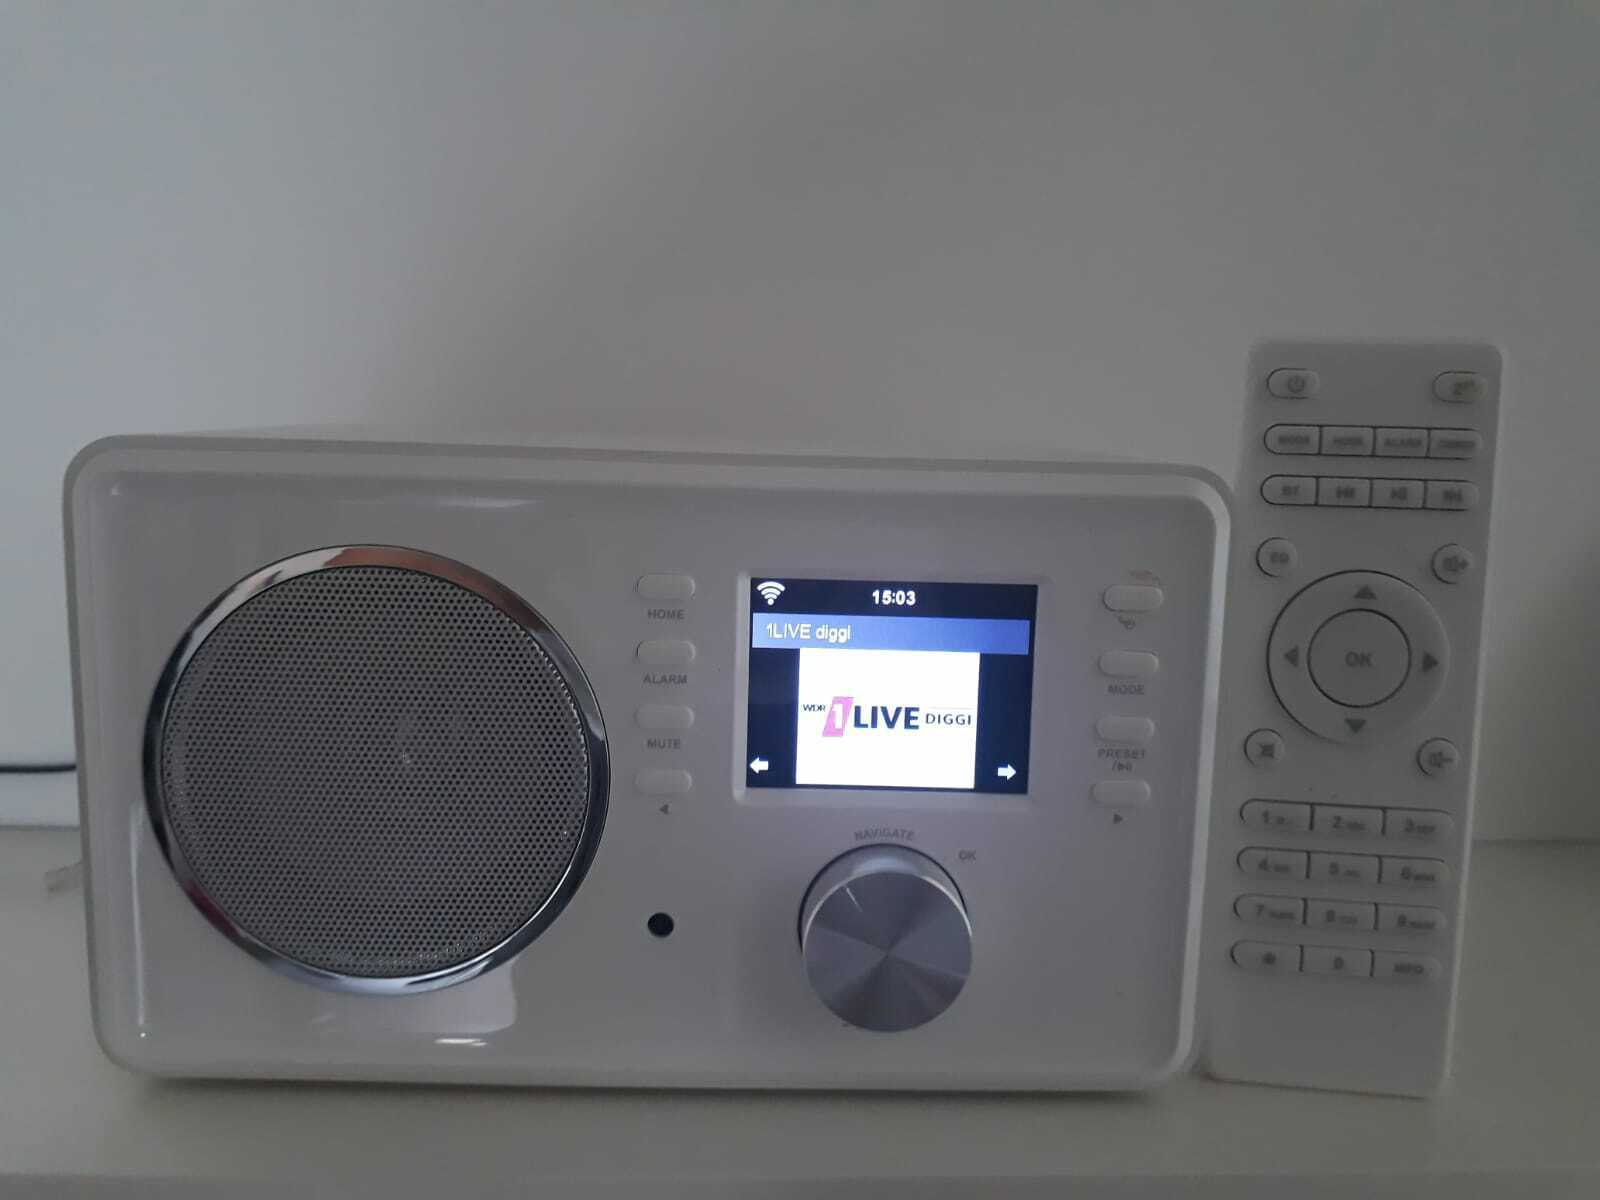 Internetradio WLAN Radio Wecker Timer Web Wetter Bluetooth